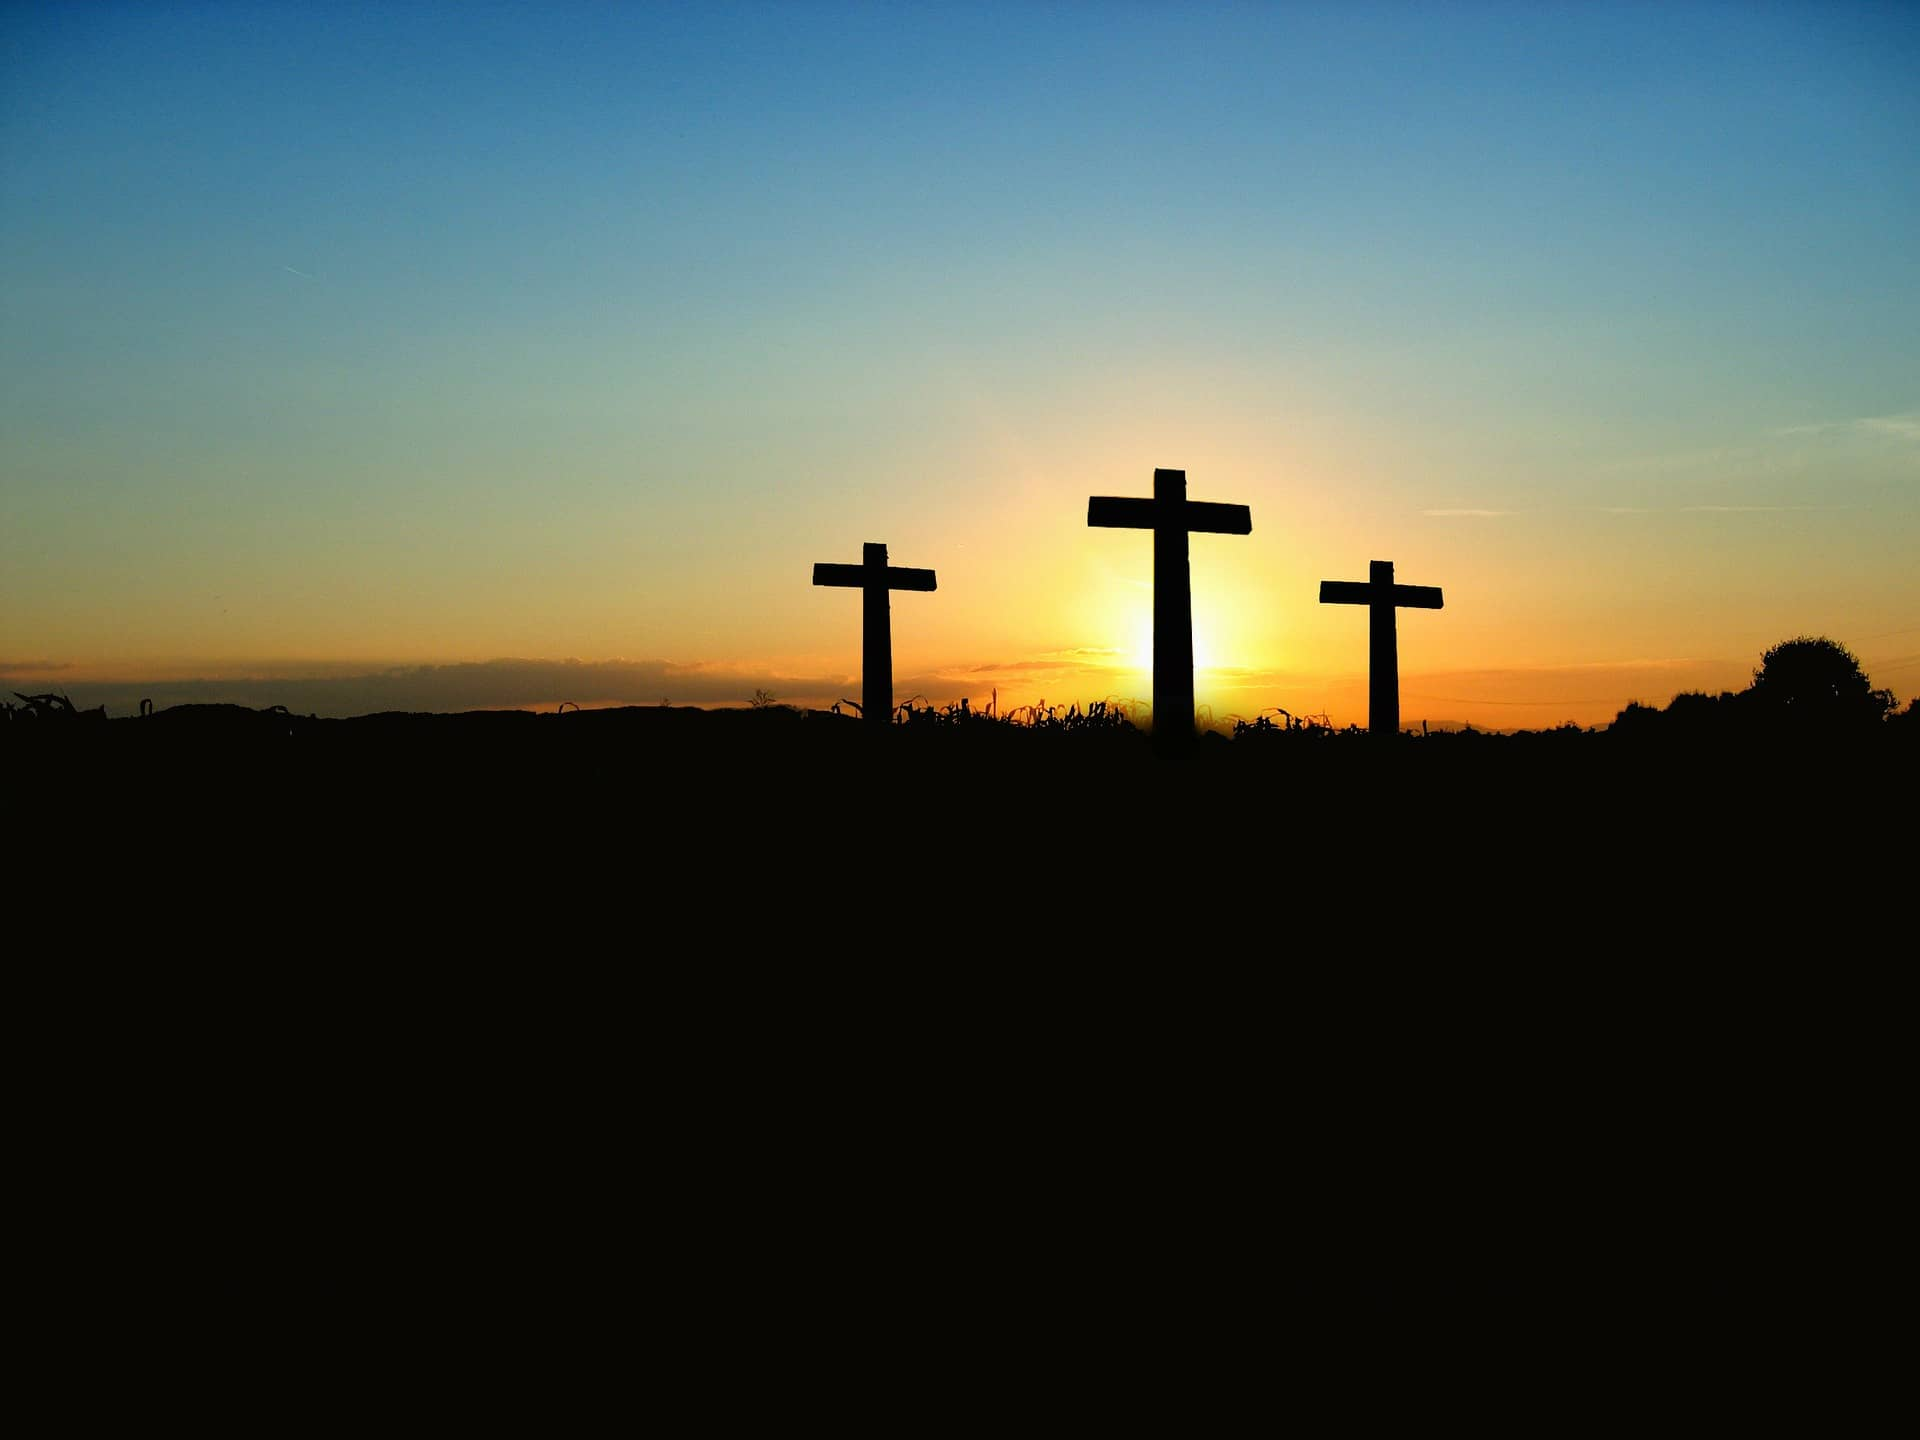 Christianity and Temptation are Inseparable but Victory Sure